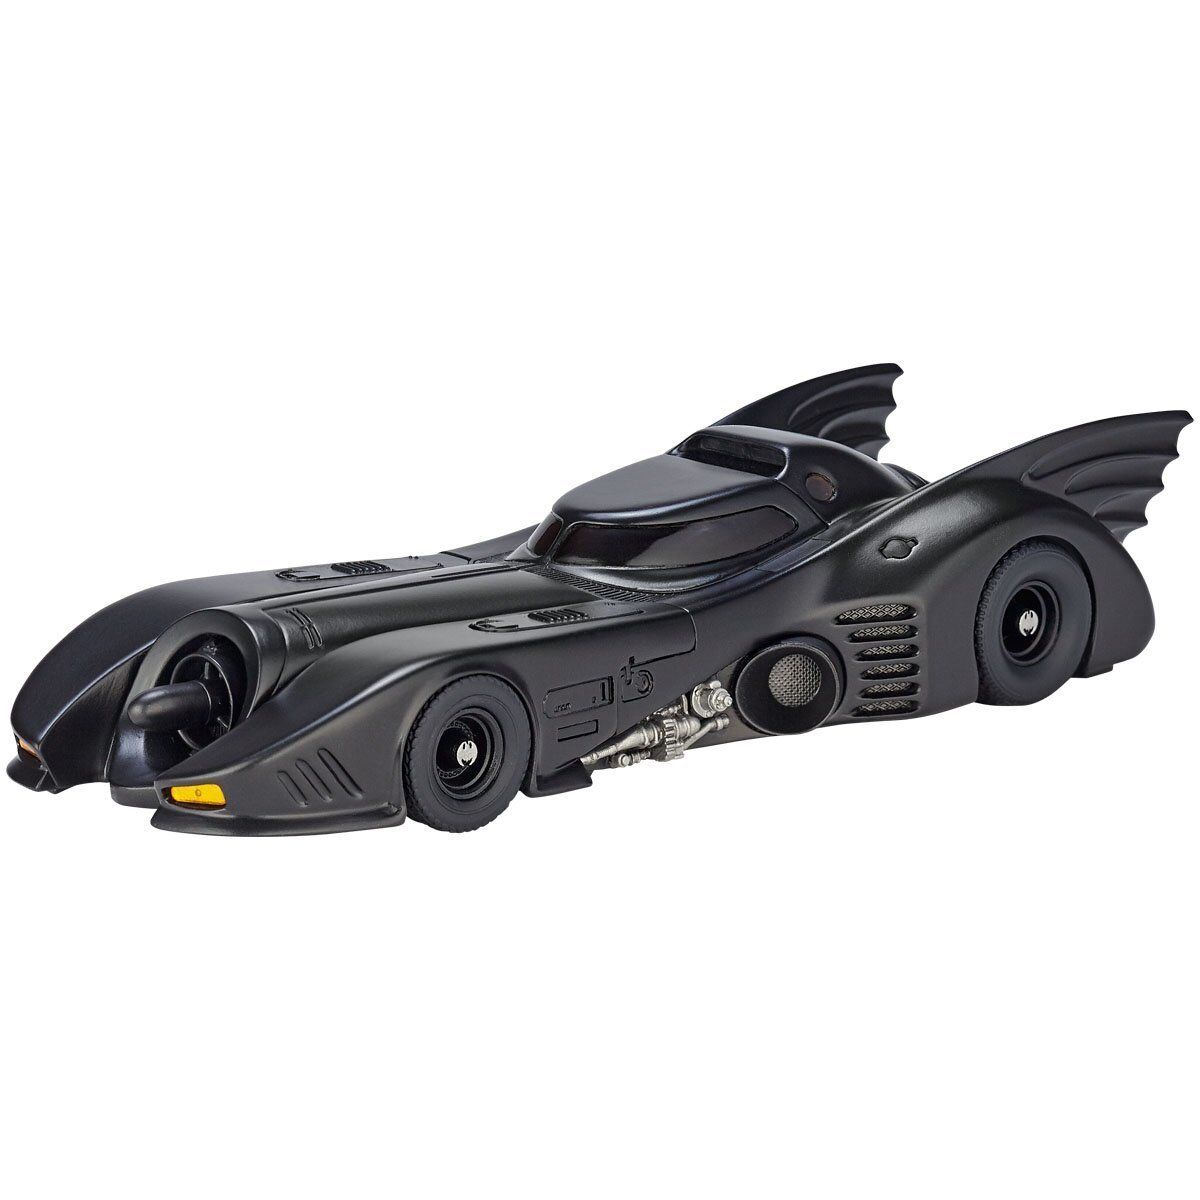 Kaiyodo figure complex Movie Revo Batmobile 1989 170mm Painted Action Figure